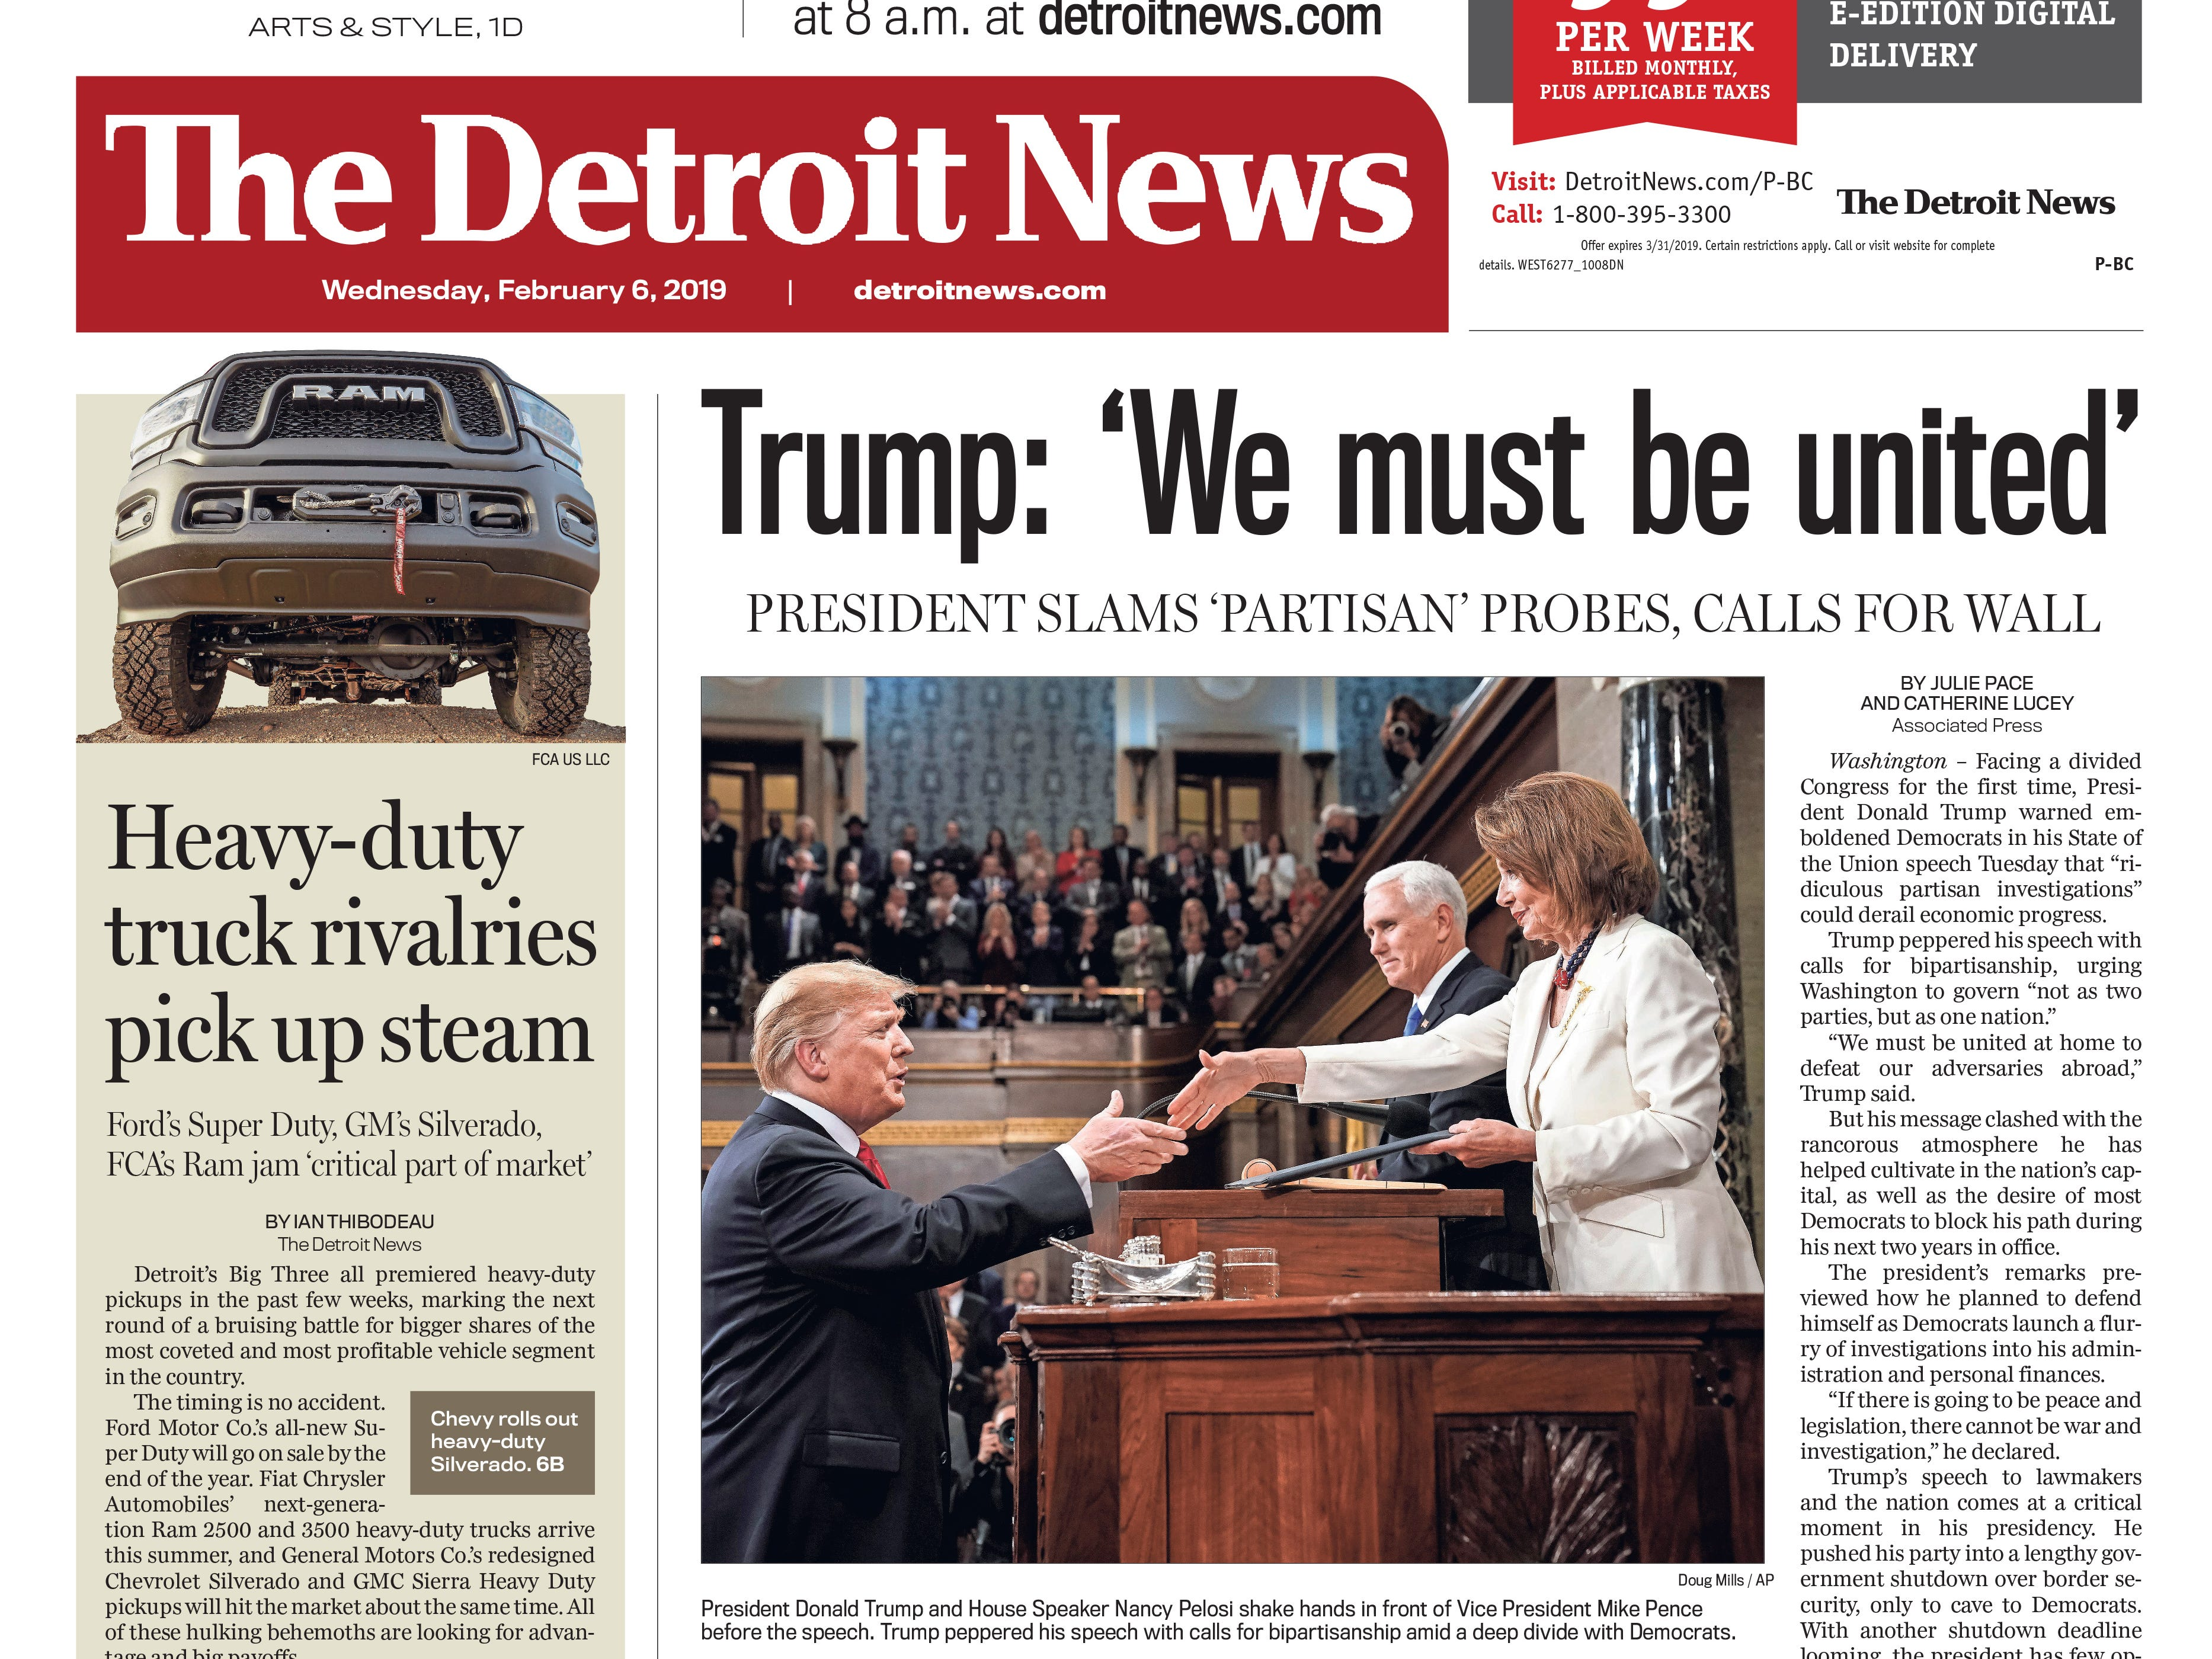 The front page of the Detroit News on Wednesday, February 6, 2019.